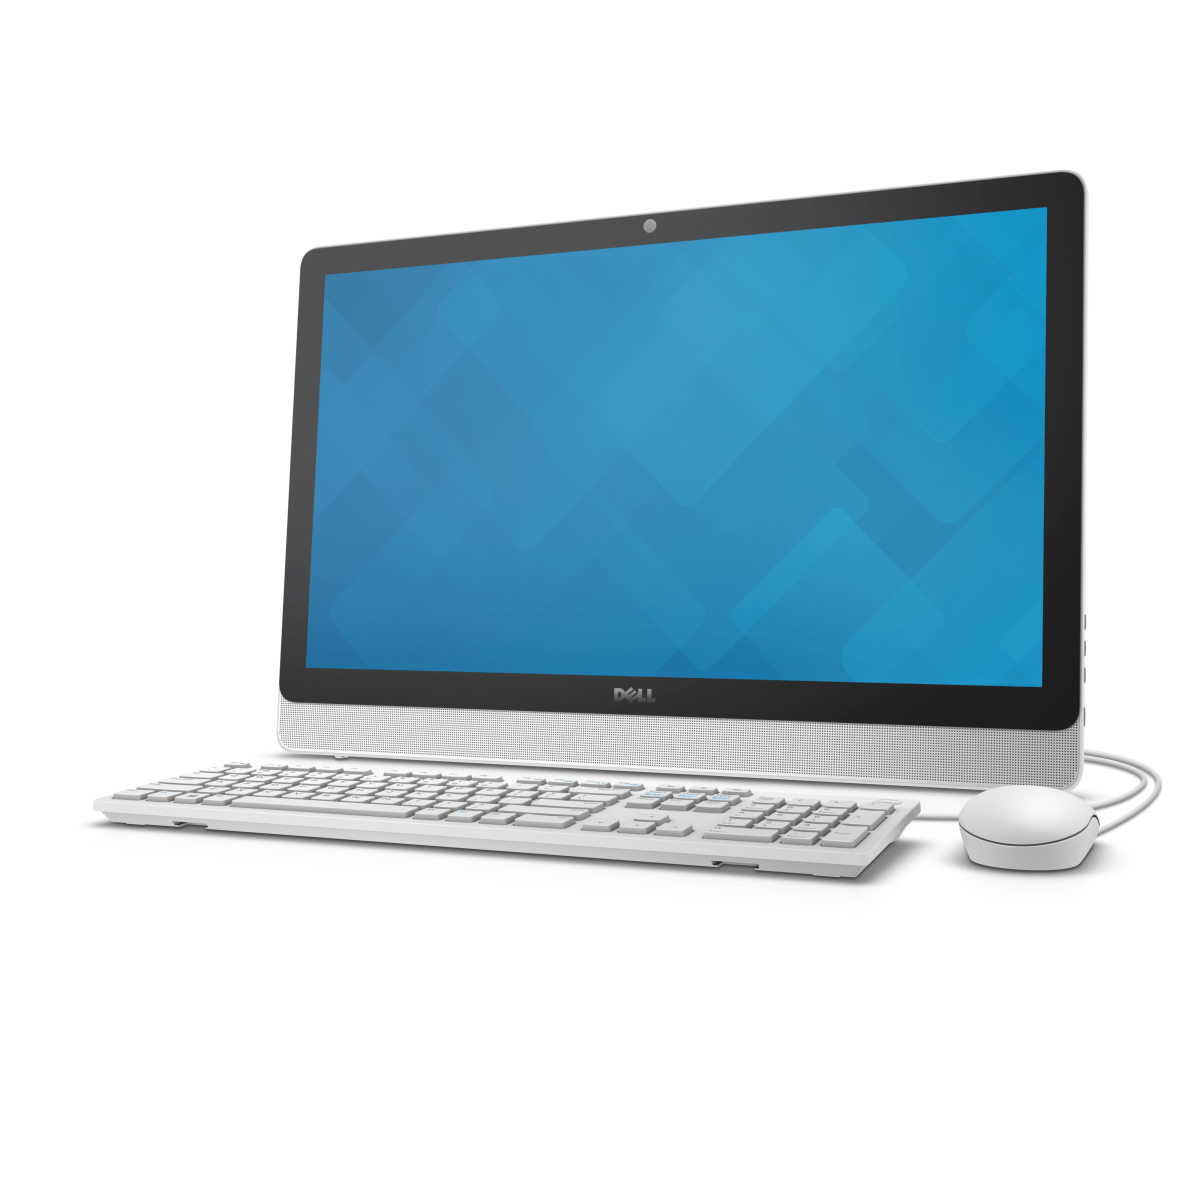 Dell-Inspiron-image.png